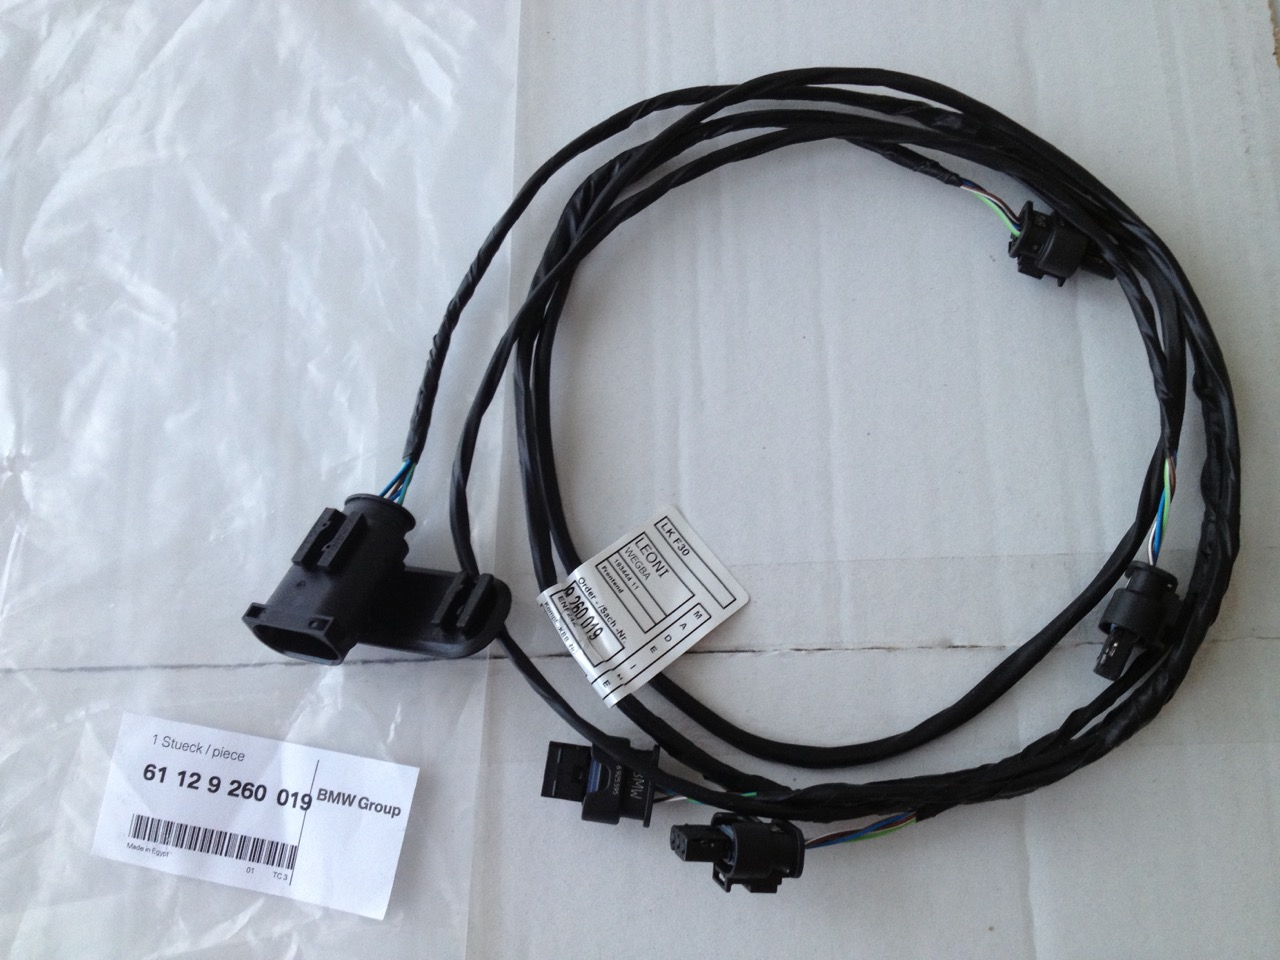 Front Park Distance Control Pdc Retrofit Dyi Bmw Wiring Harness Repair Kit Name Img 1549 Views 3204 Size 2429 Kb